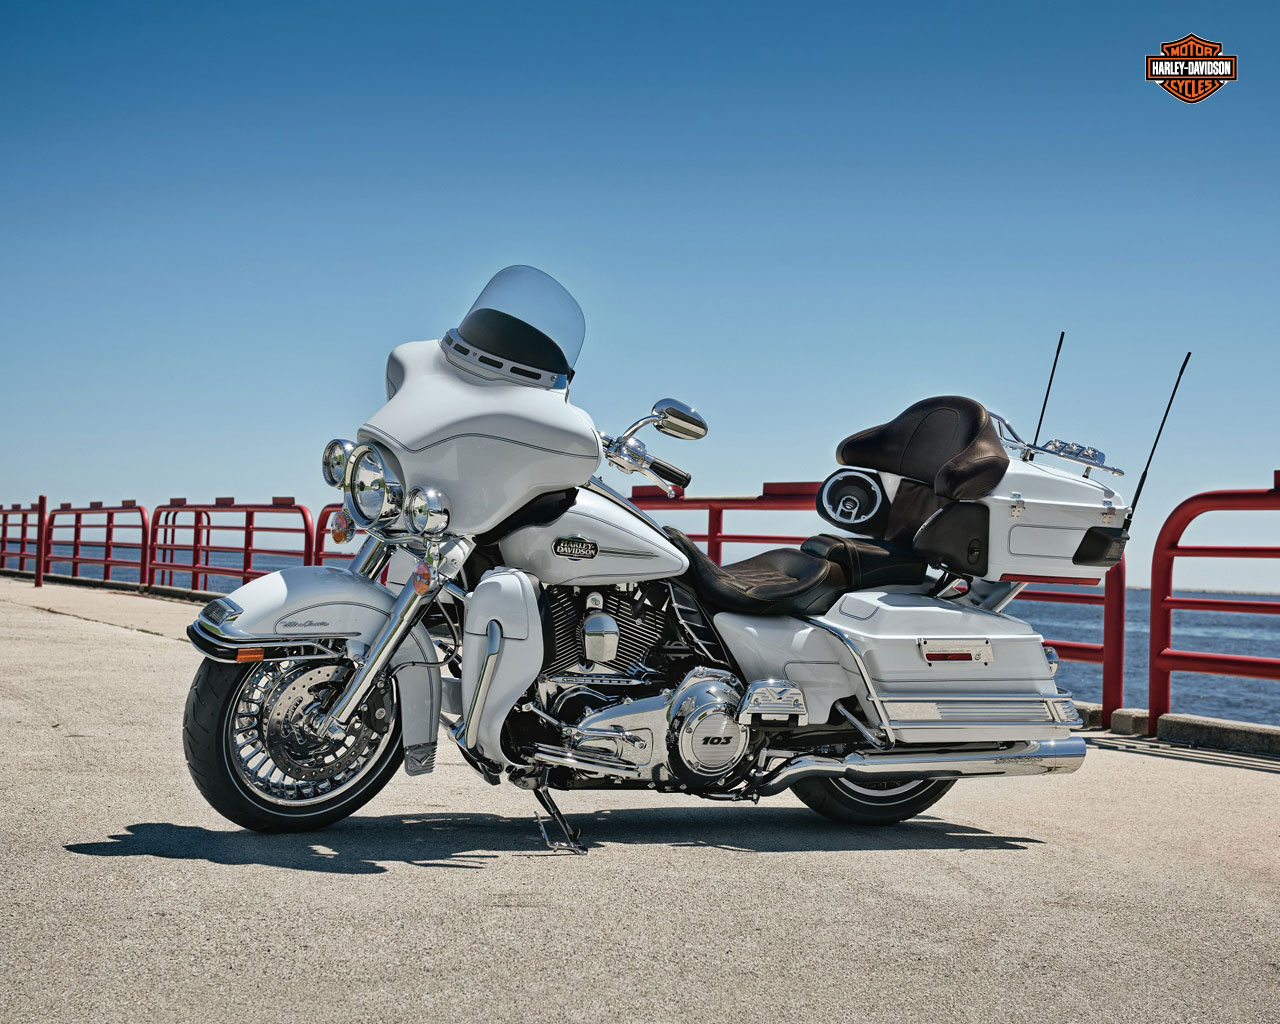 Harley-Davidson FLHTC Electra Glide Classic 2003 pics #18022